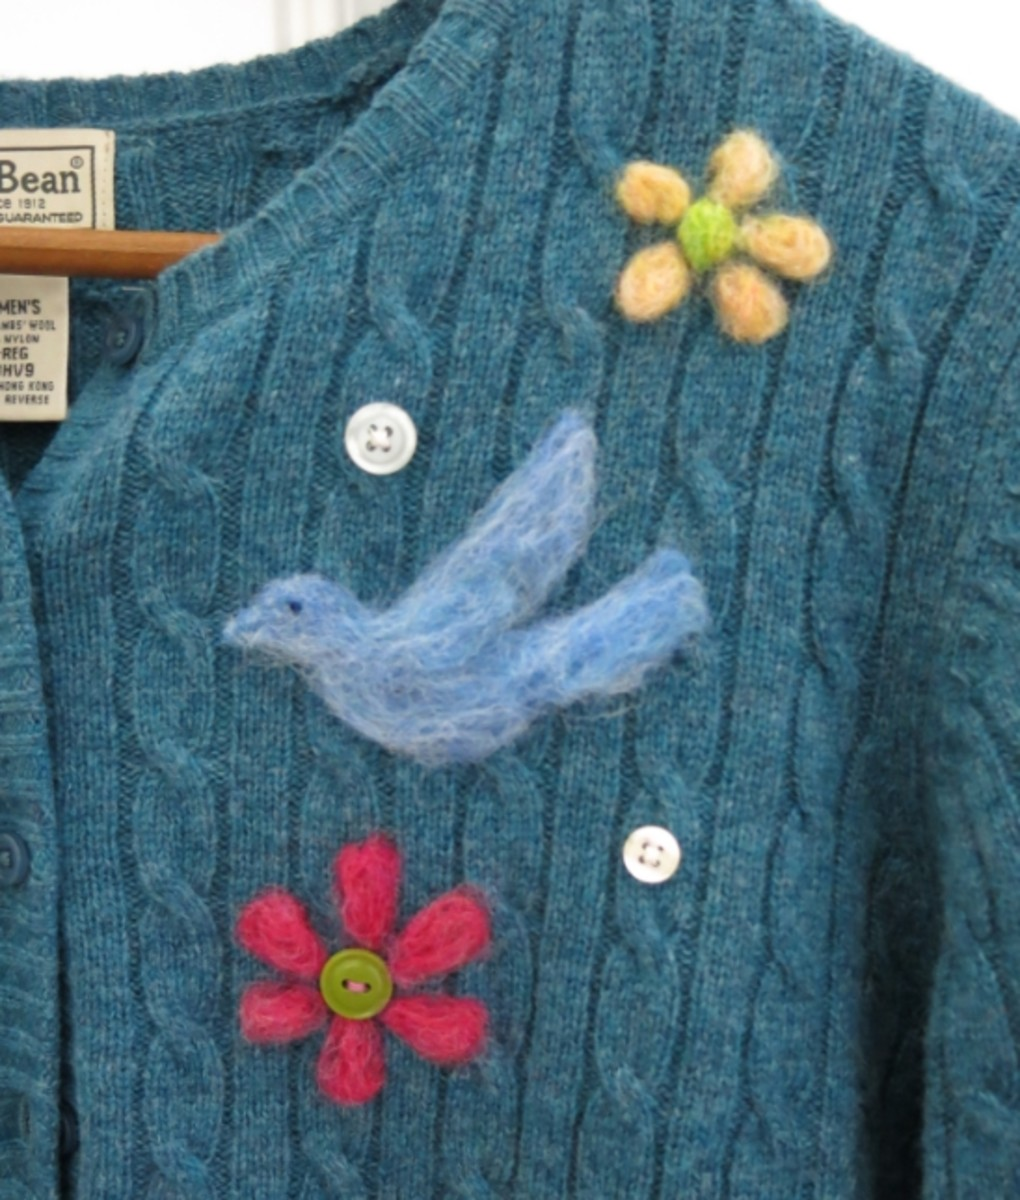 Completed needle felted design on the front of my sweater.